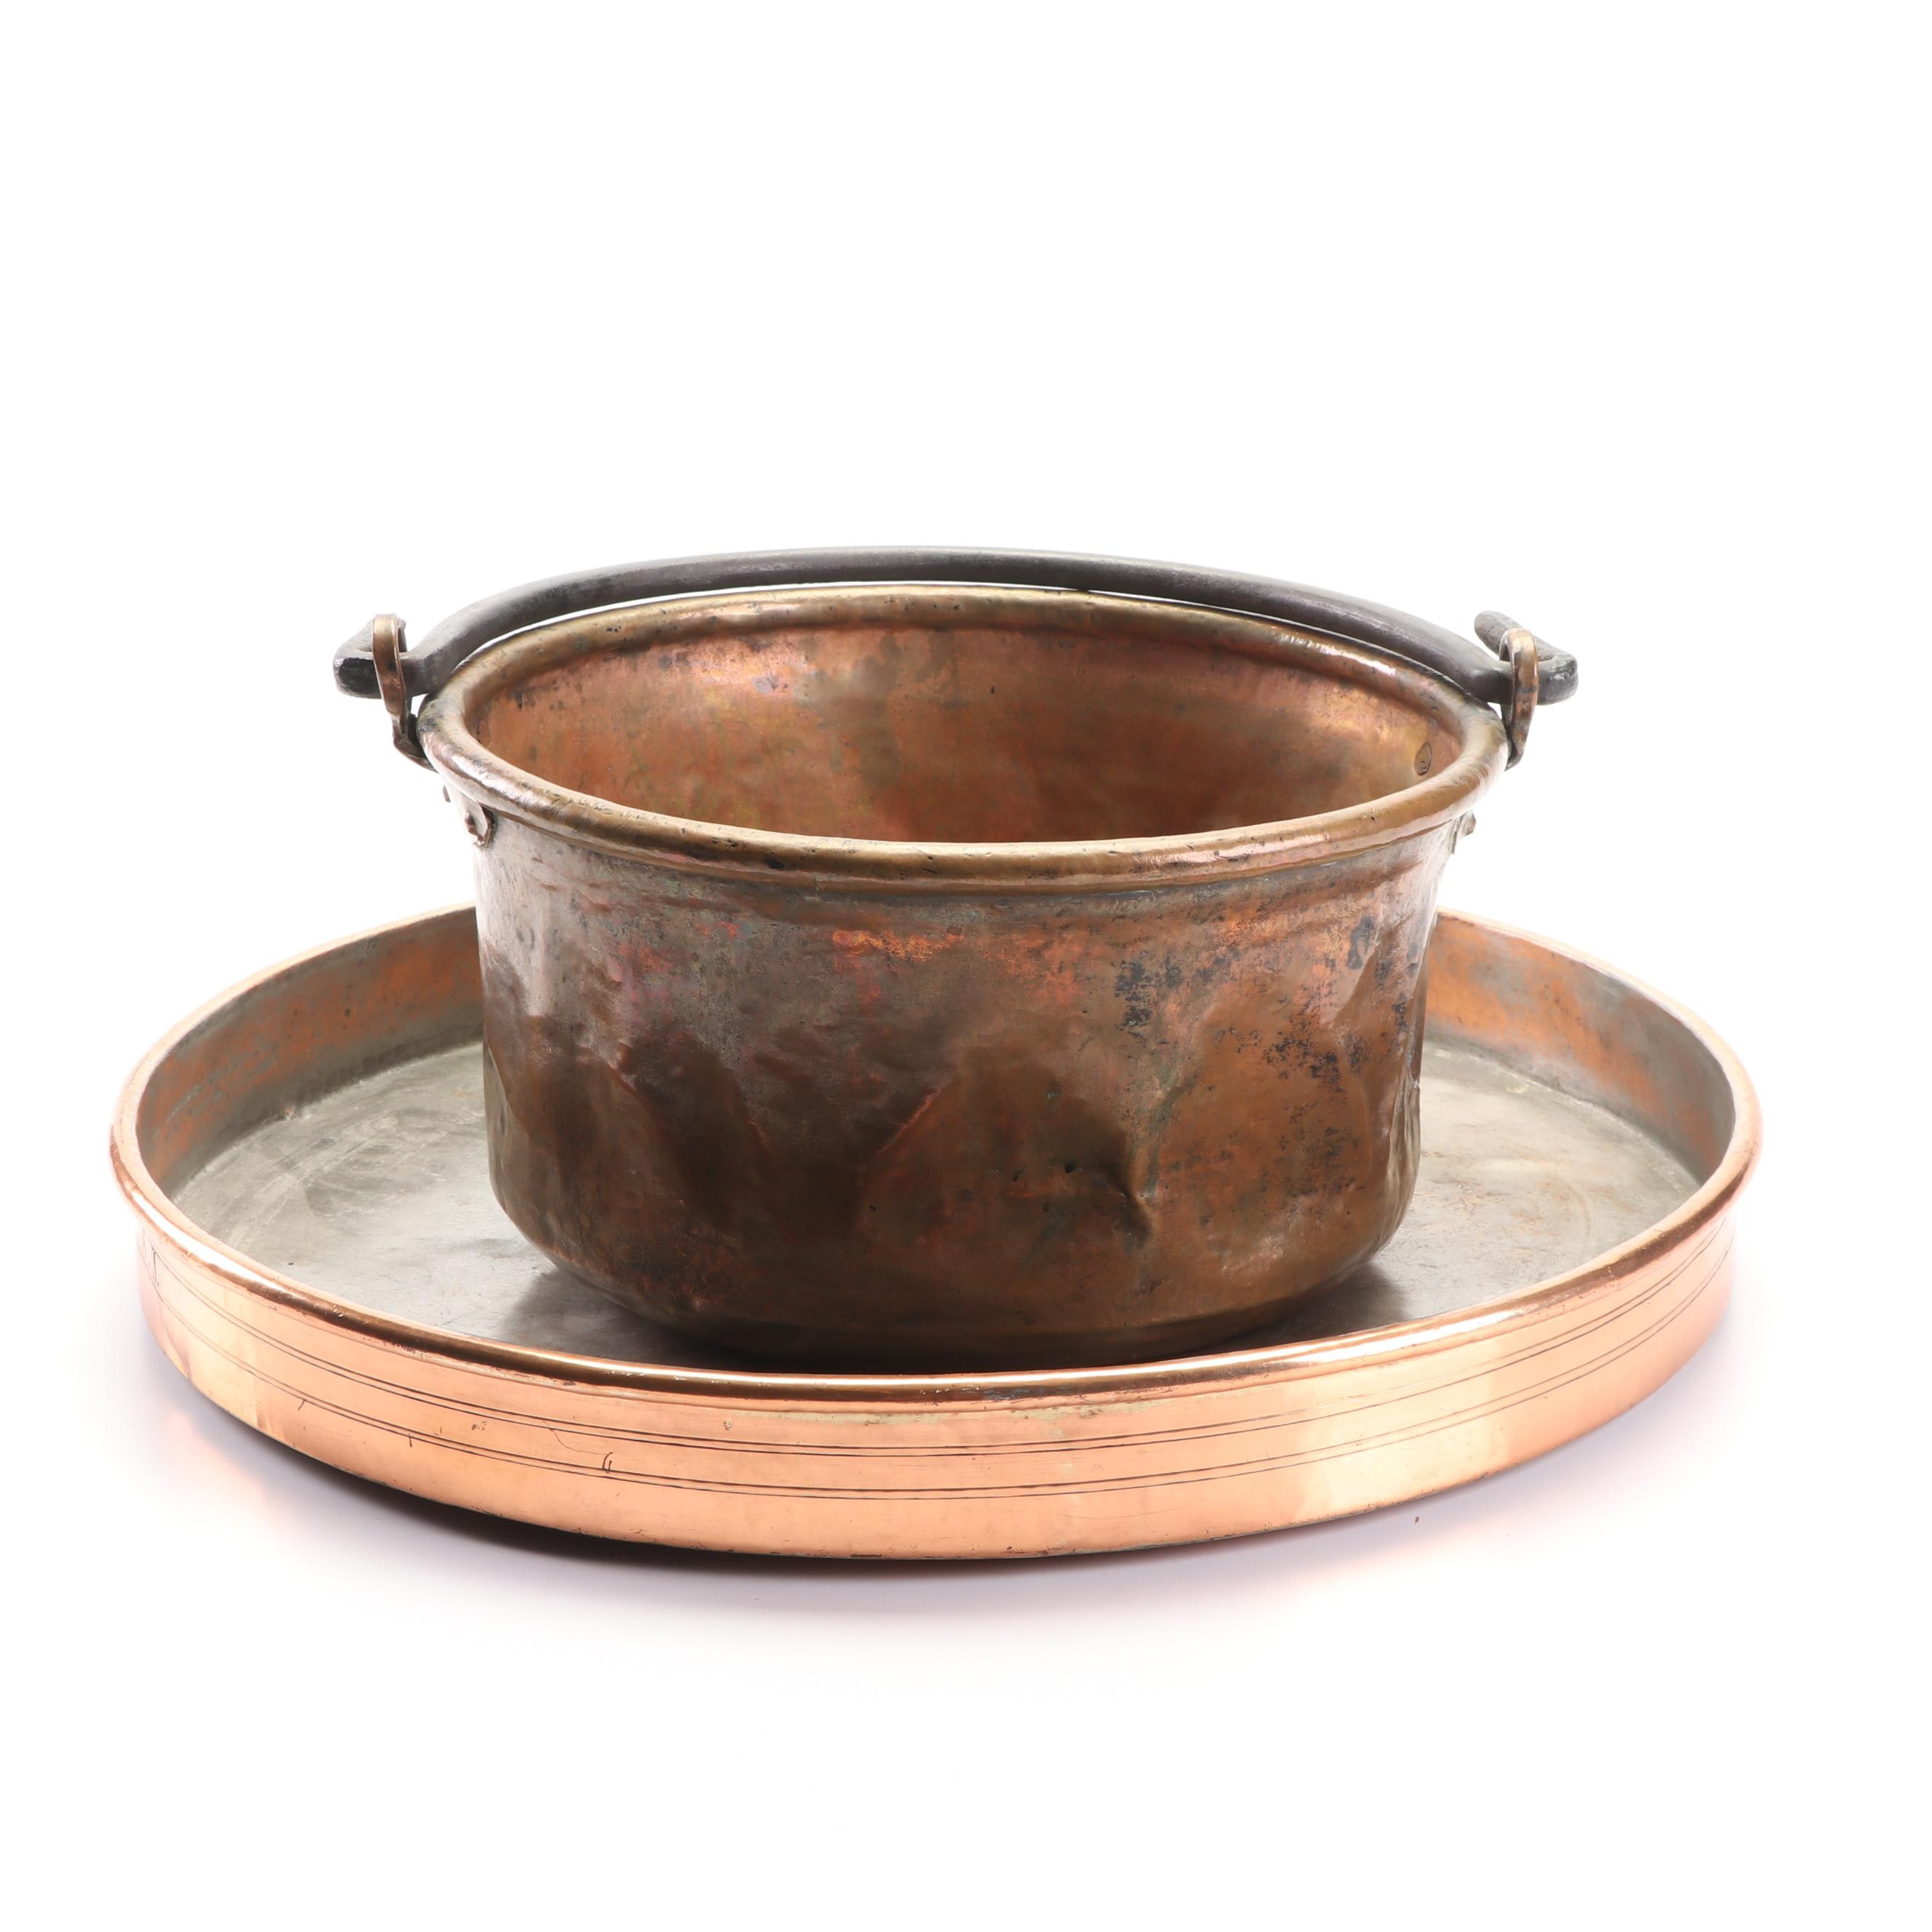 Antique Copper Serving Tray and Cauldron